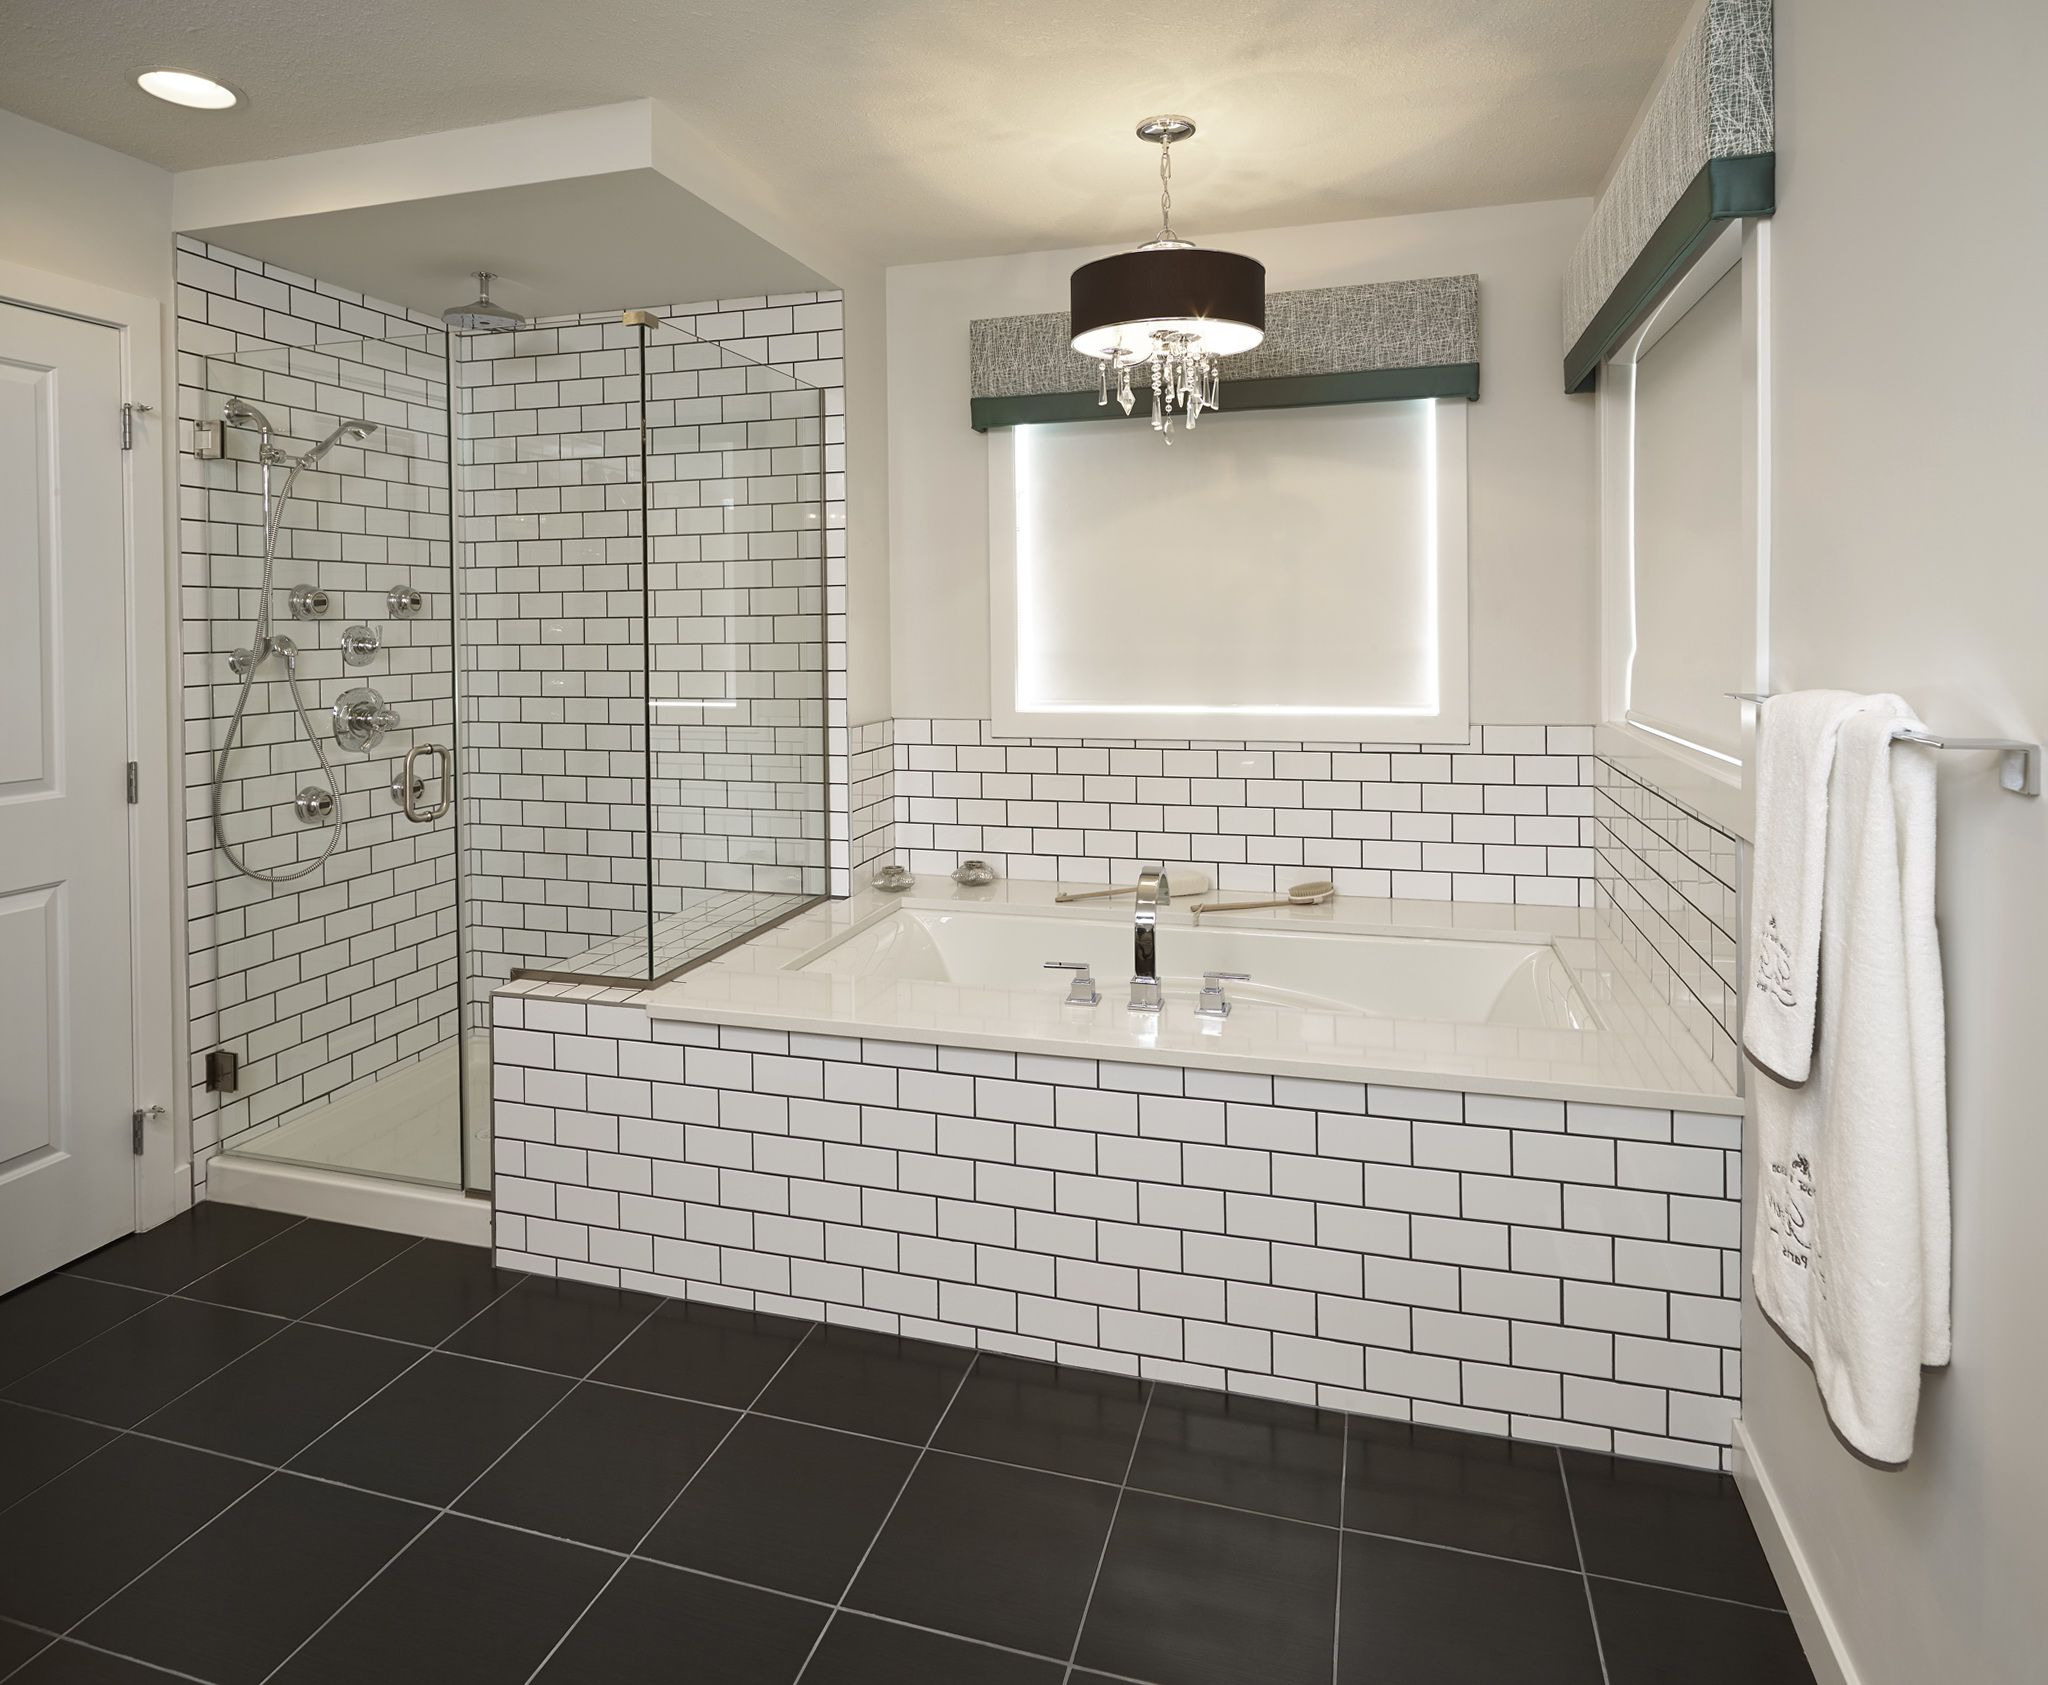 Classic Black Drum Shaded Chandelier above White Bathtub and White Subway Tile Bathroom Wall